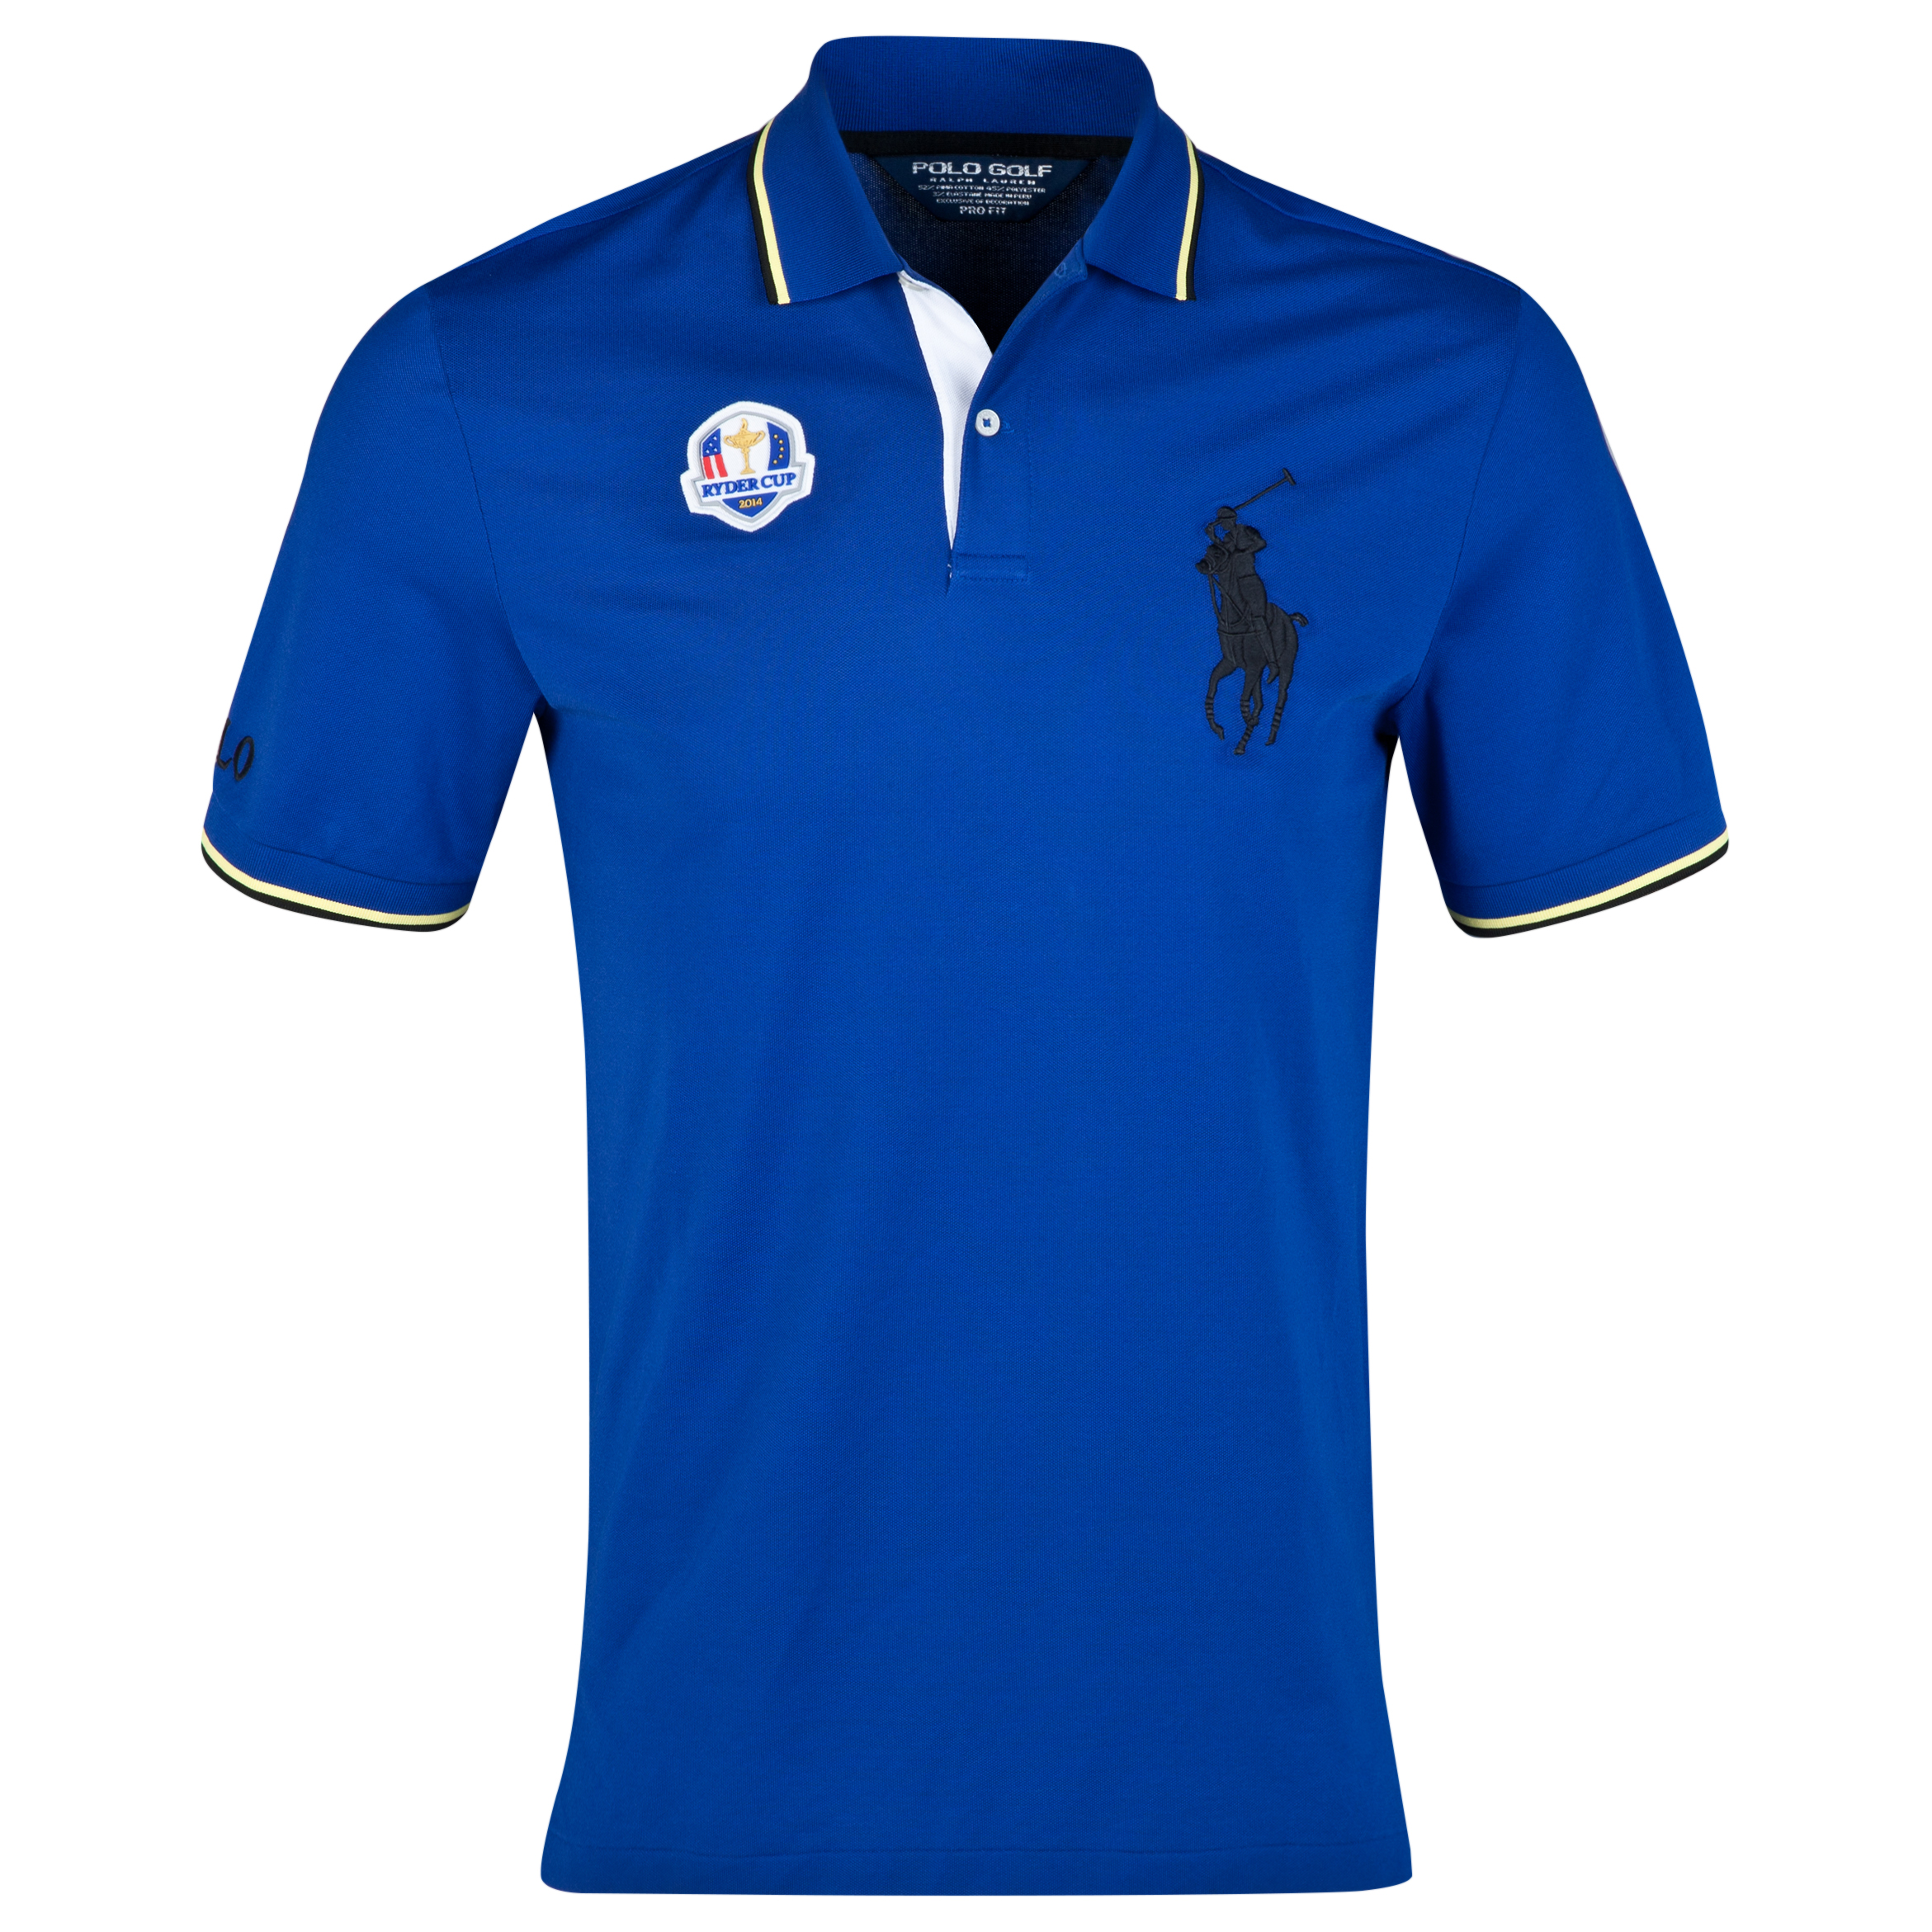 The 2014 Ryder Cup Ralph Lauren Big Pony Polo Royal Blue